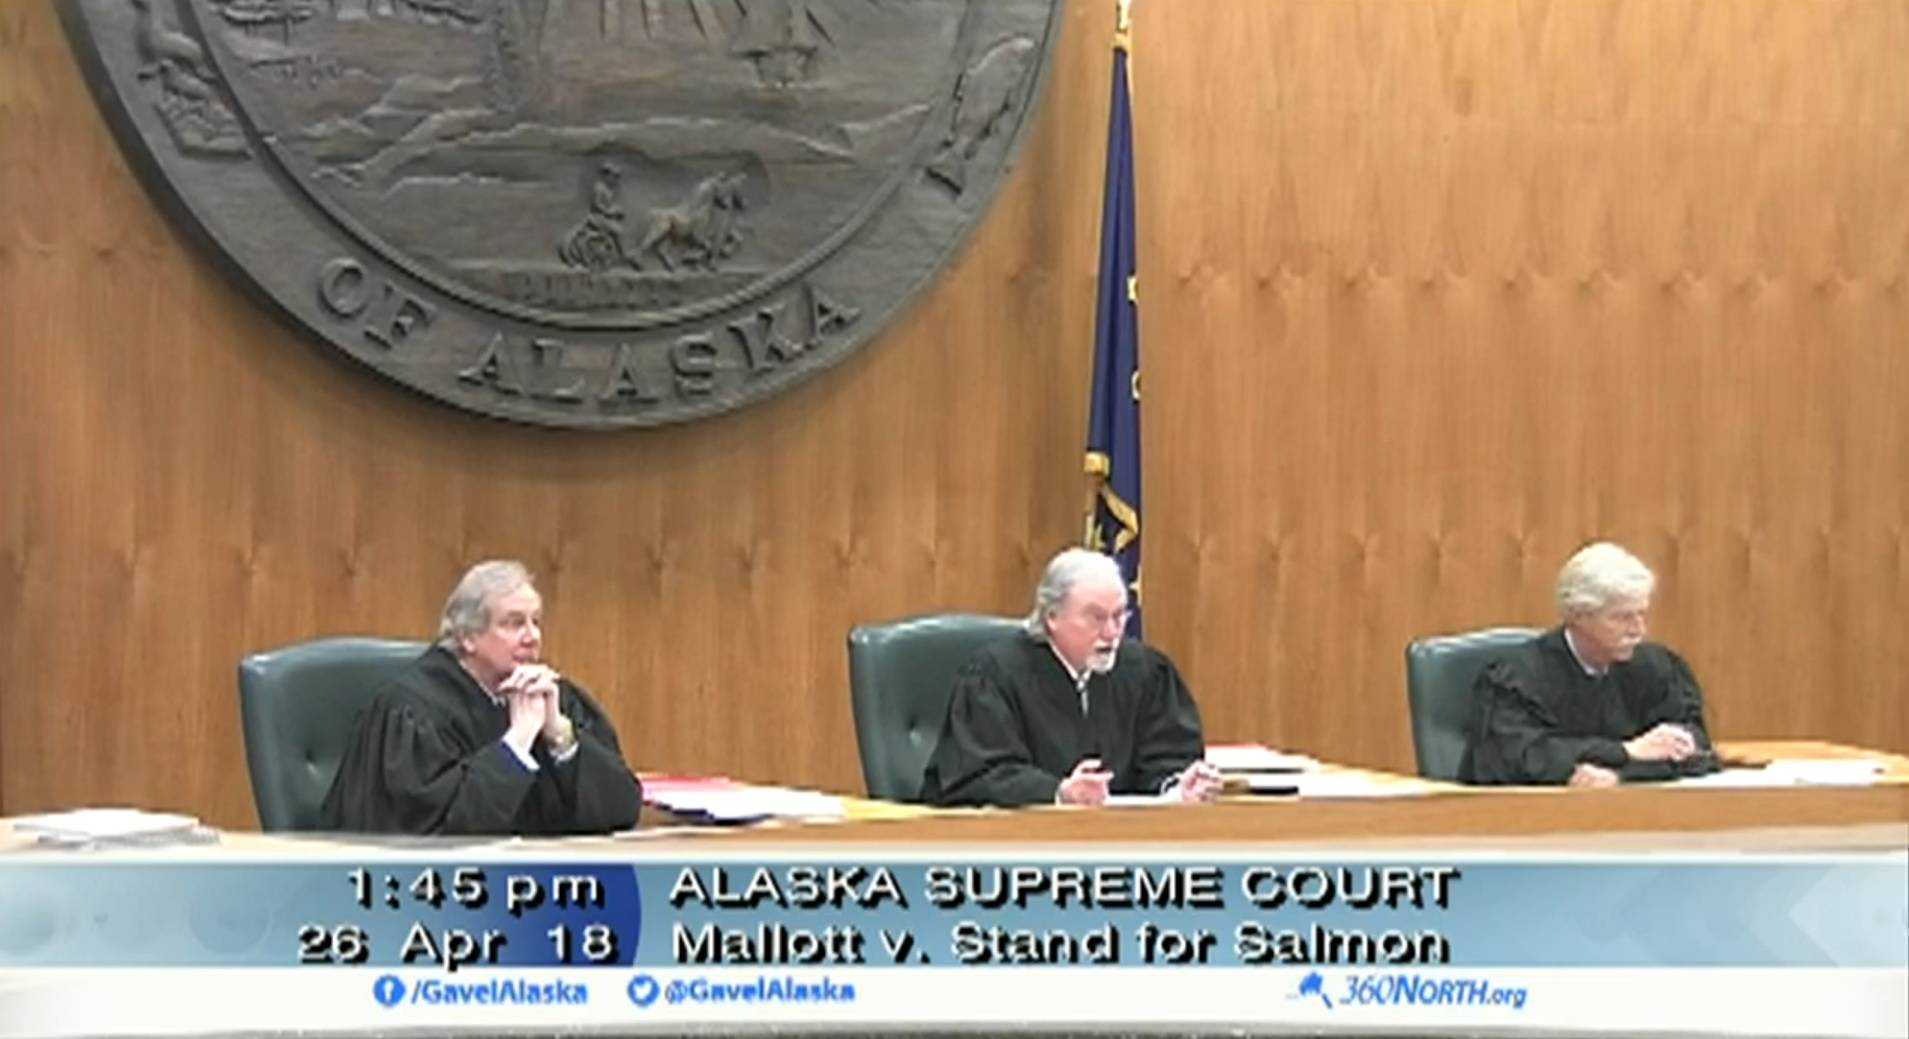 In a screenshot from a video feed provided by 360 North, justices of the Alaska Supreme Court hear oral arguments Thursday, April 26, 2018 on the case Mallott v. Stand for Salmon in Anchorage. (Video capture)